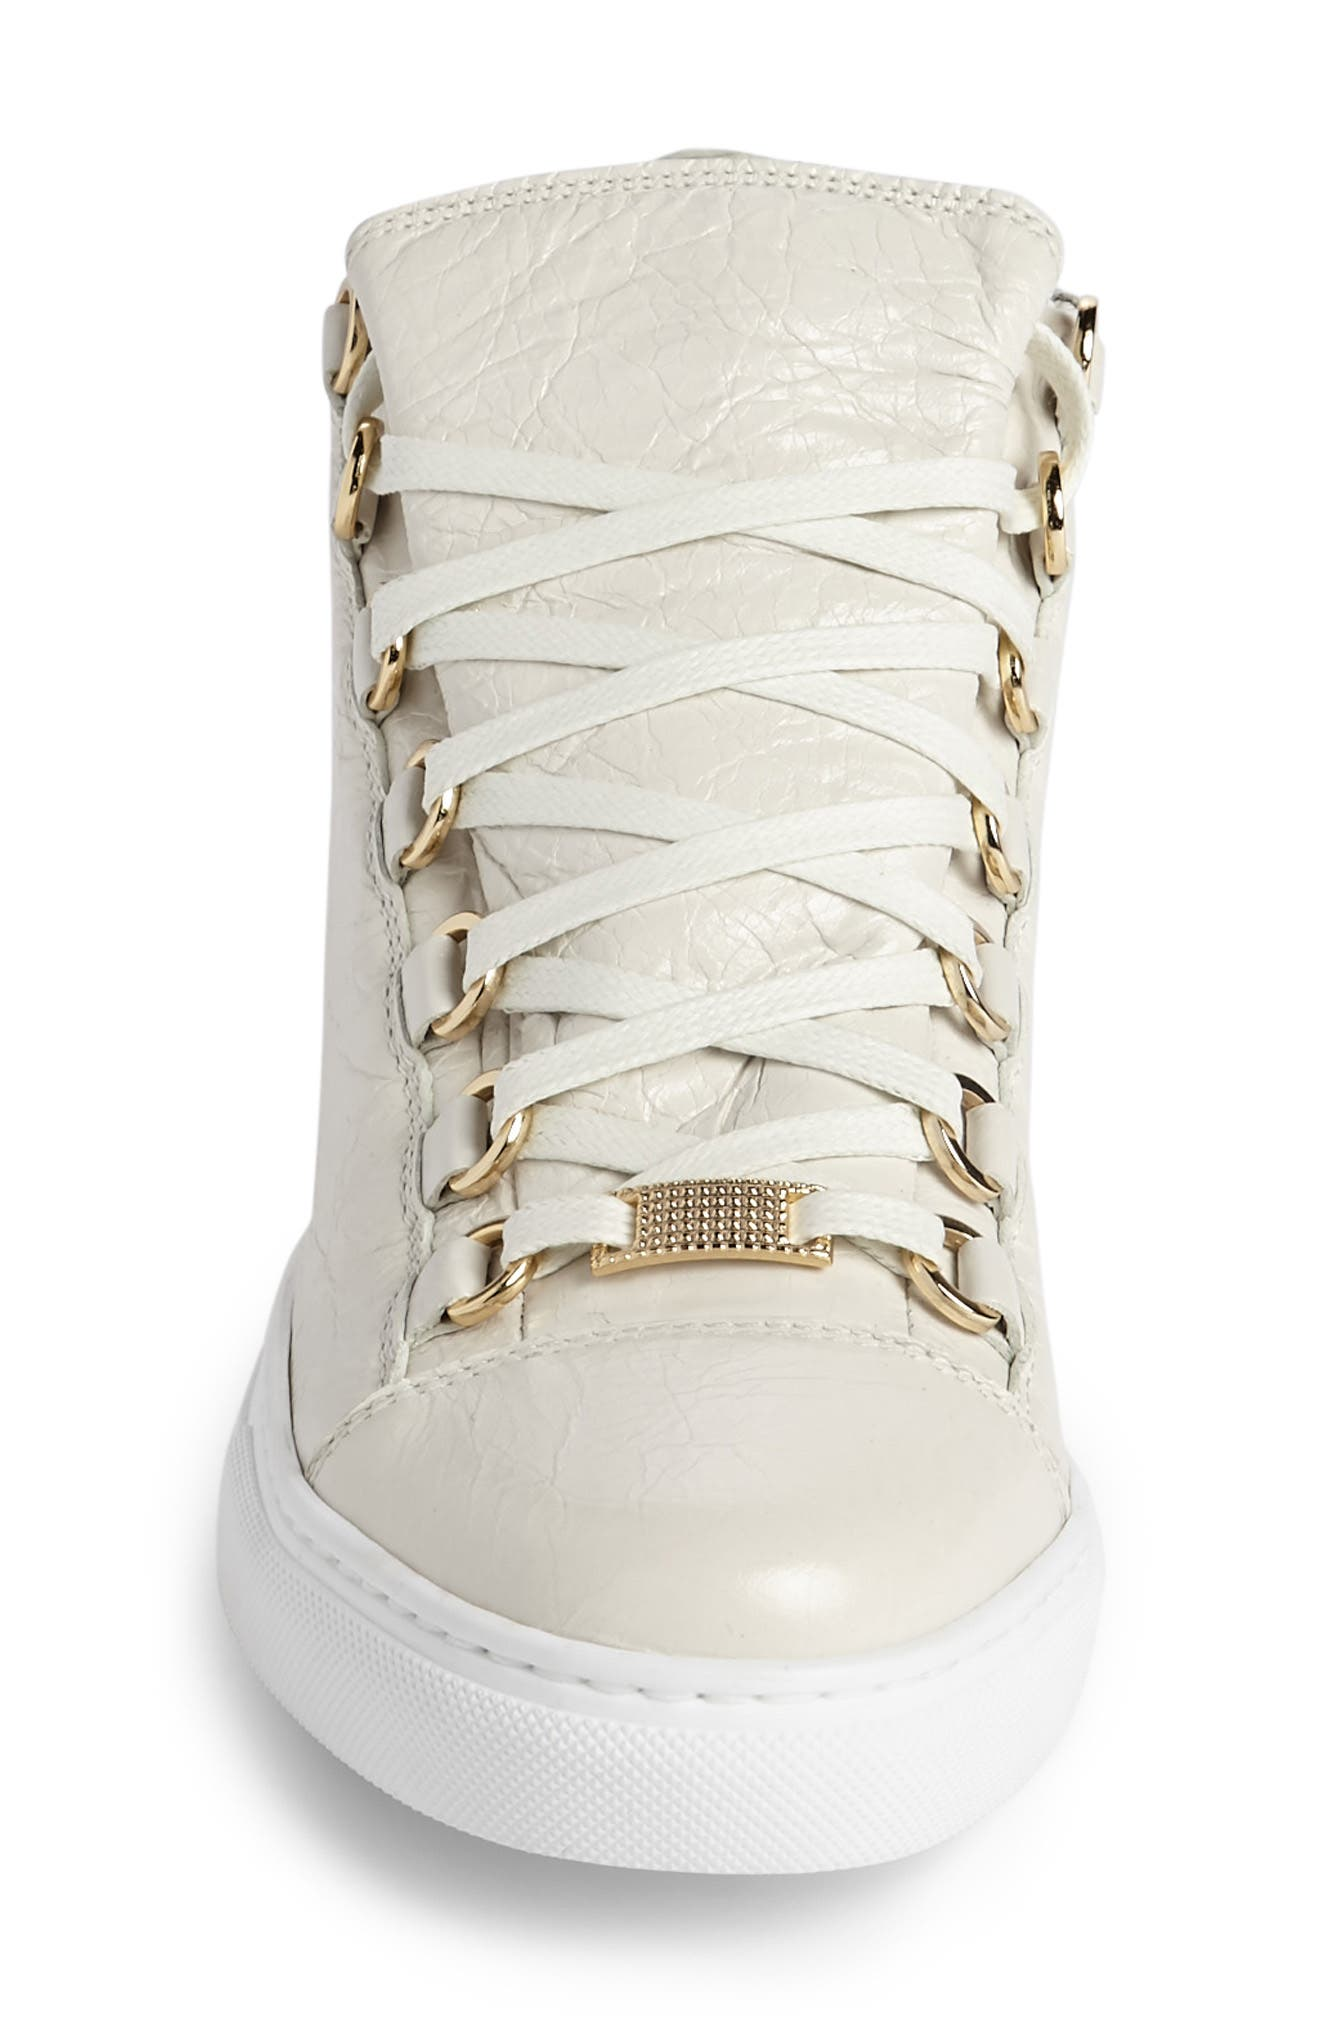 High Top Sneaker,                             Alternate thumbnail 3, color,                             Ivory